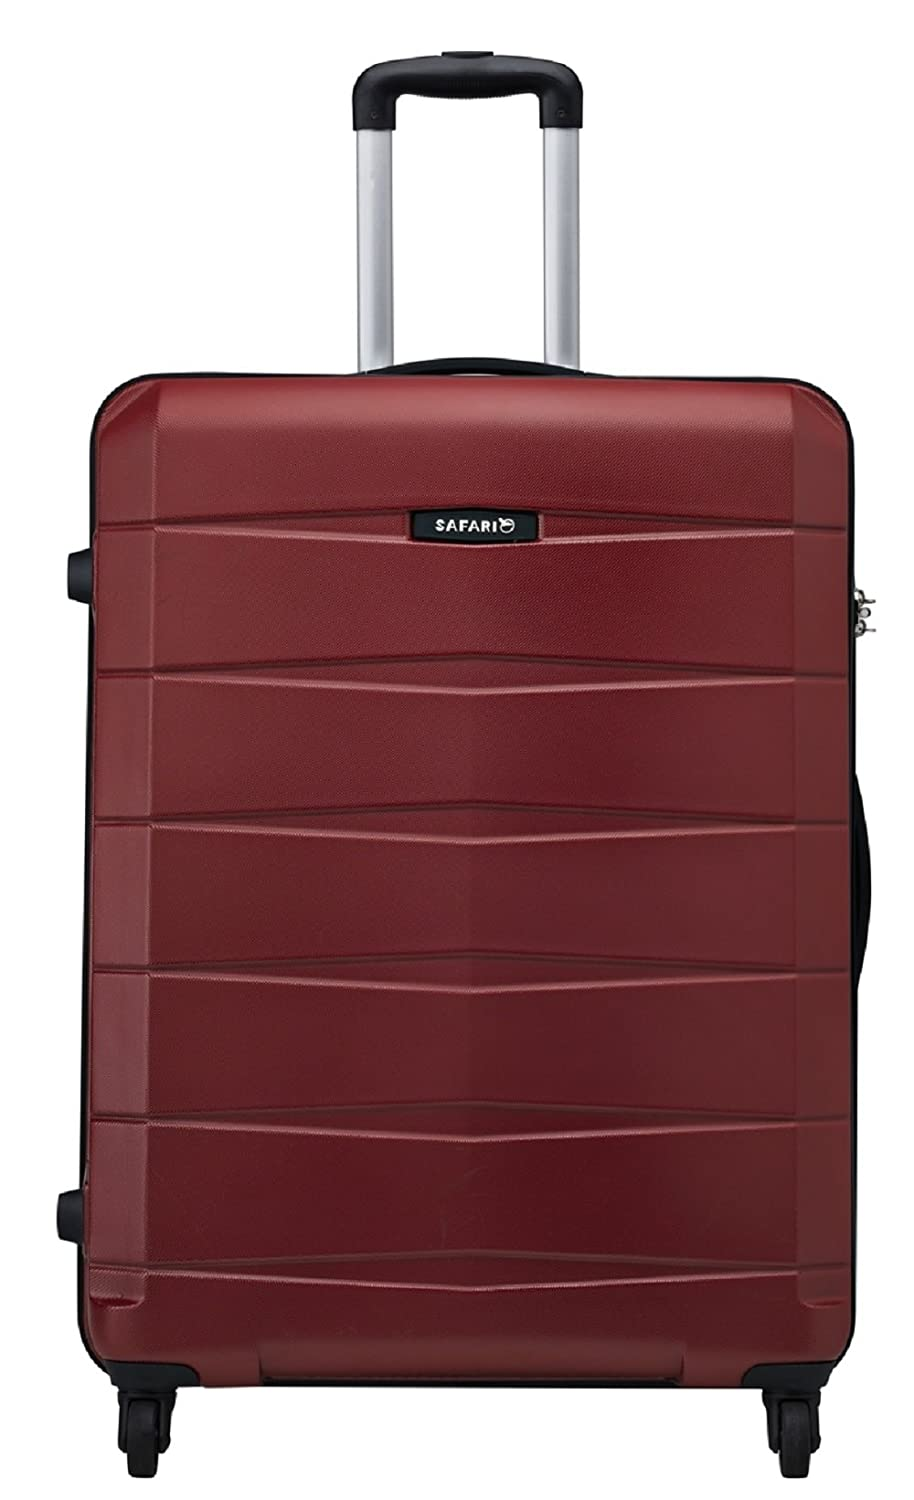 Safari Polycarbonate 77 cms Red Hard Sided Suitcase (REGLOSS ANTISCRATCH 4W 77 RED)